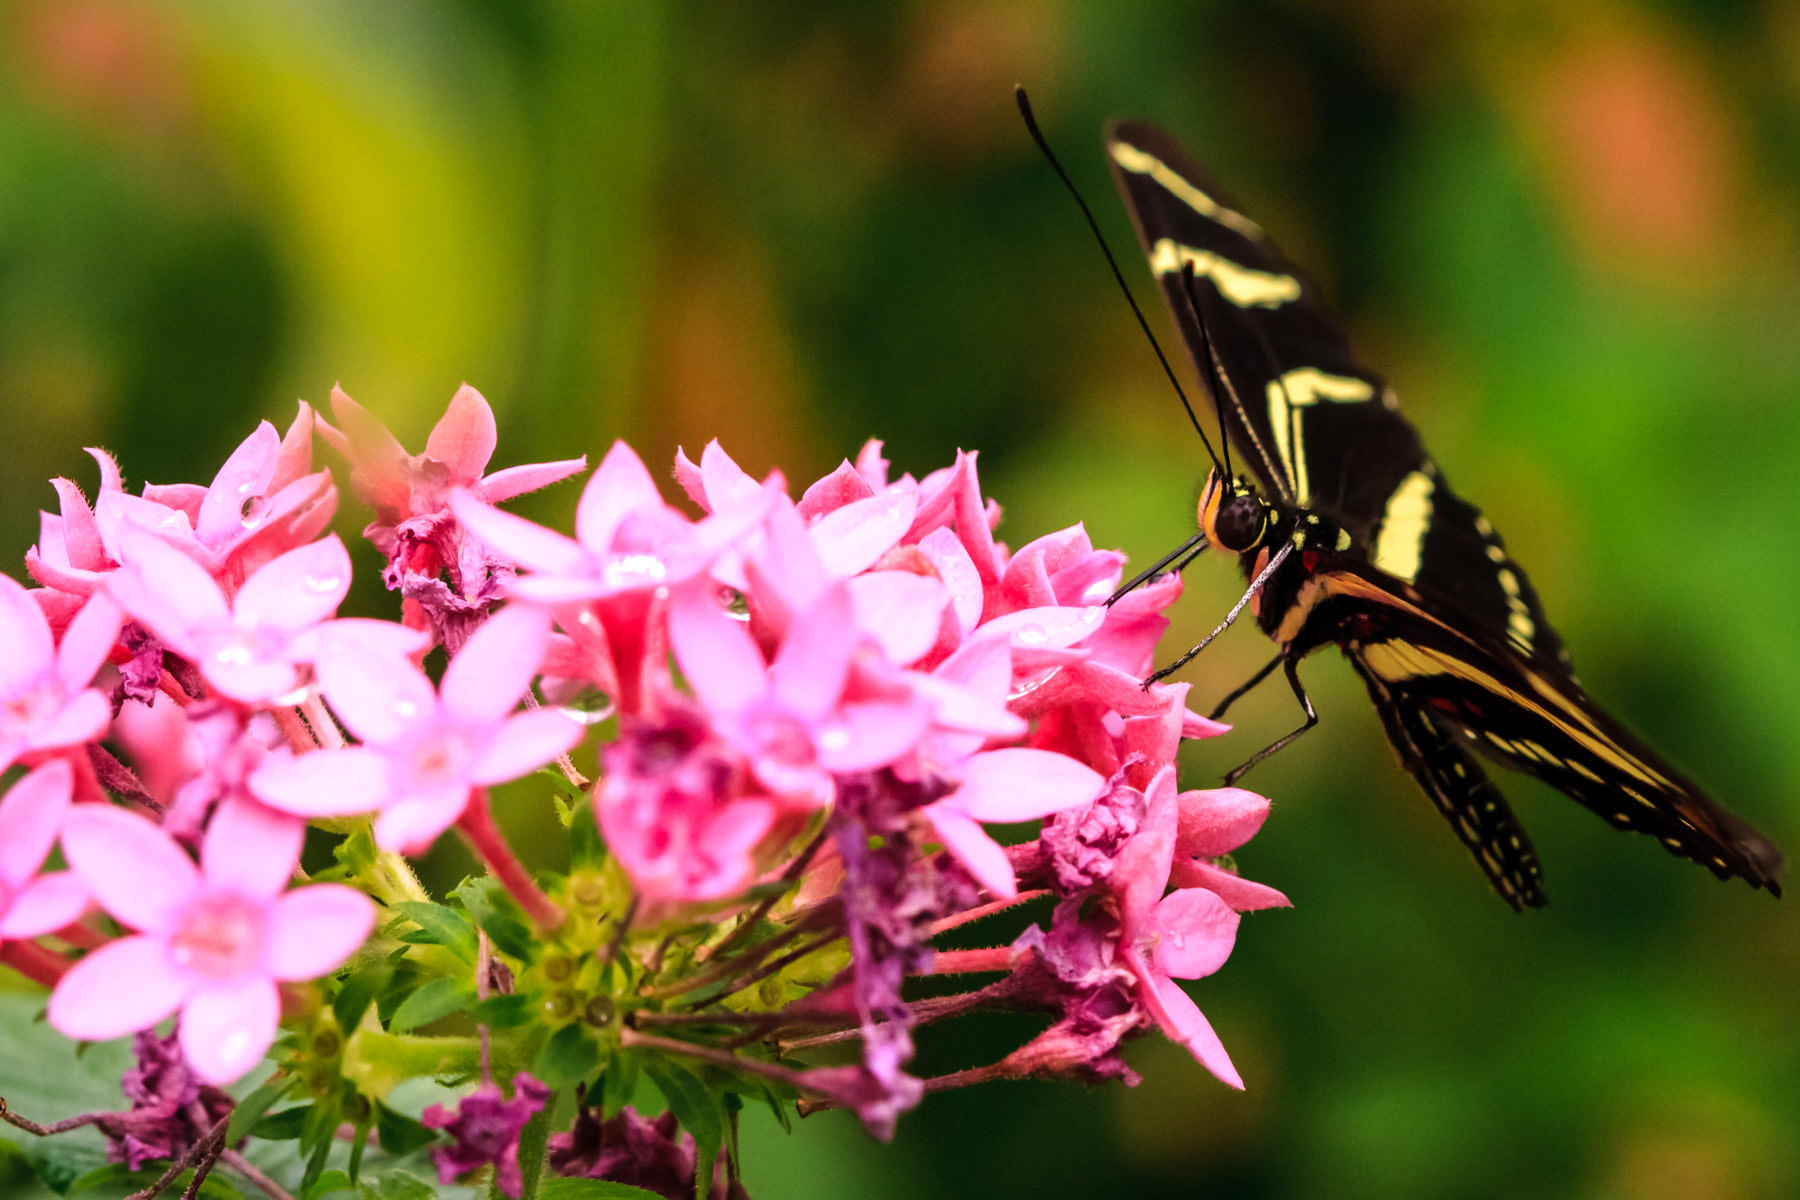 A butterfly lands on pink flowers at Dallas' Rosine Smith Sammons Butterfly House at the Texas Discovery Gardens, Fair Park.